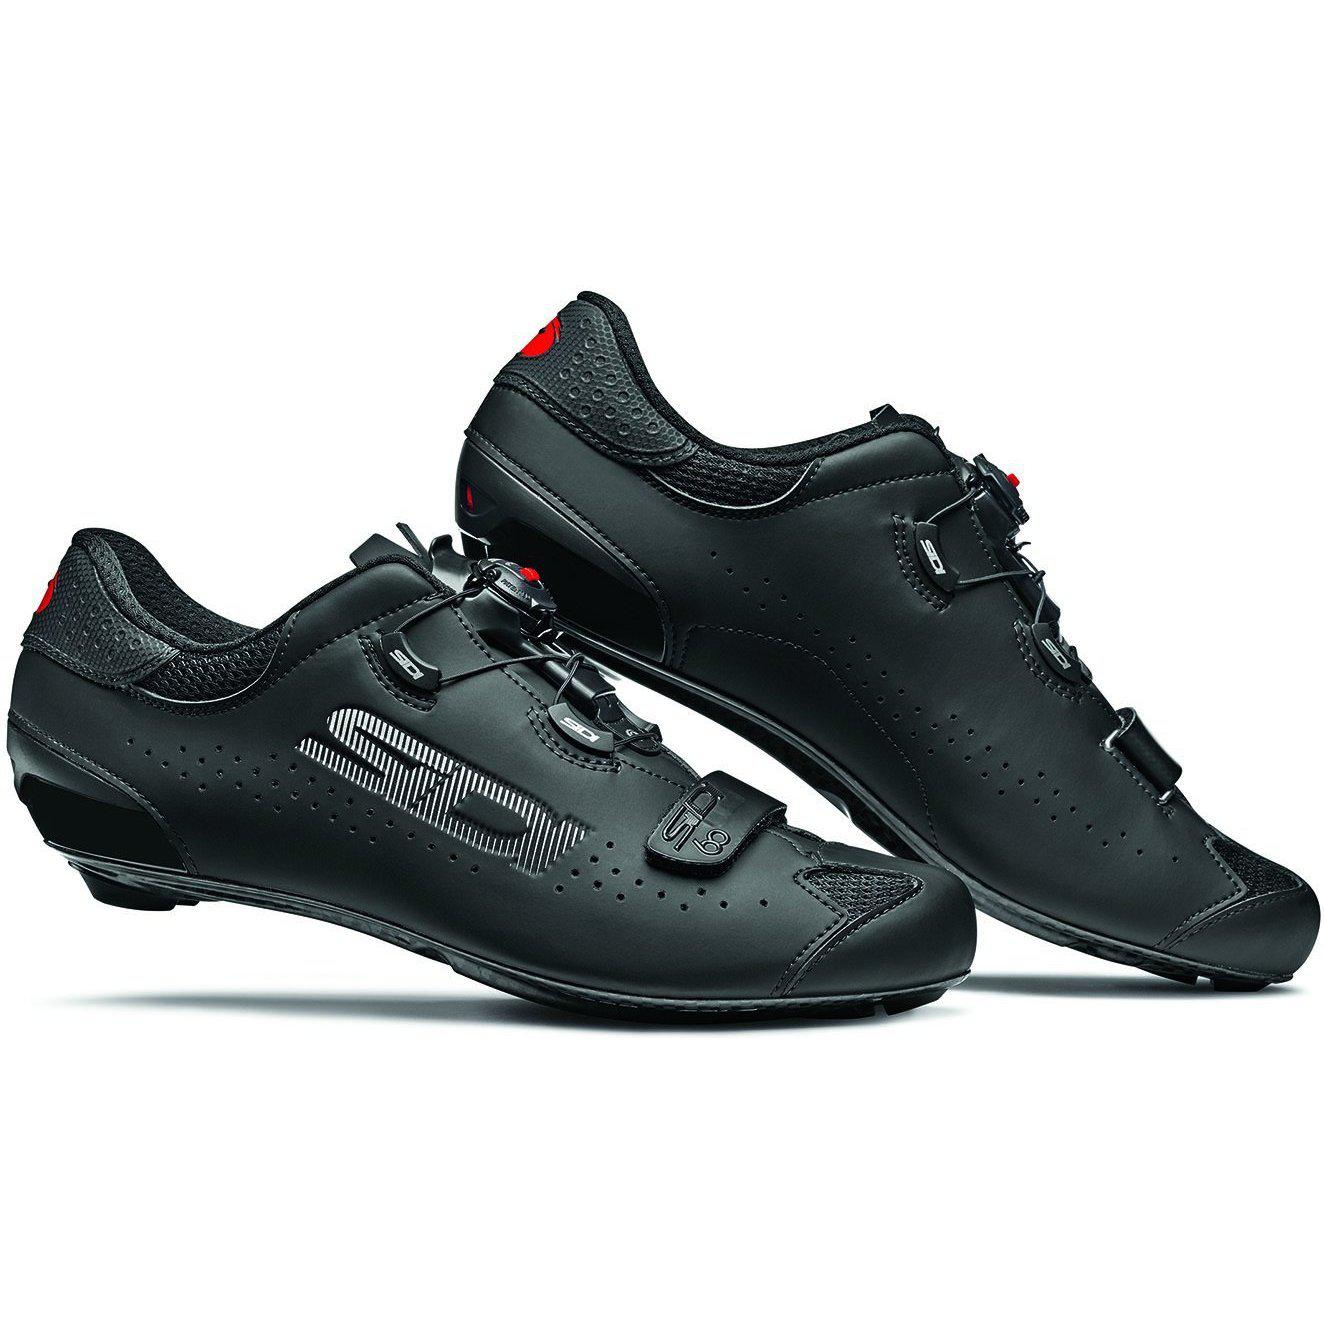 Sidi-Sidi Sixty Road Shoes-Black/Black-38-SISIXTYNENE38-saddleback-elite-performance-cycling